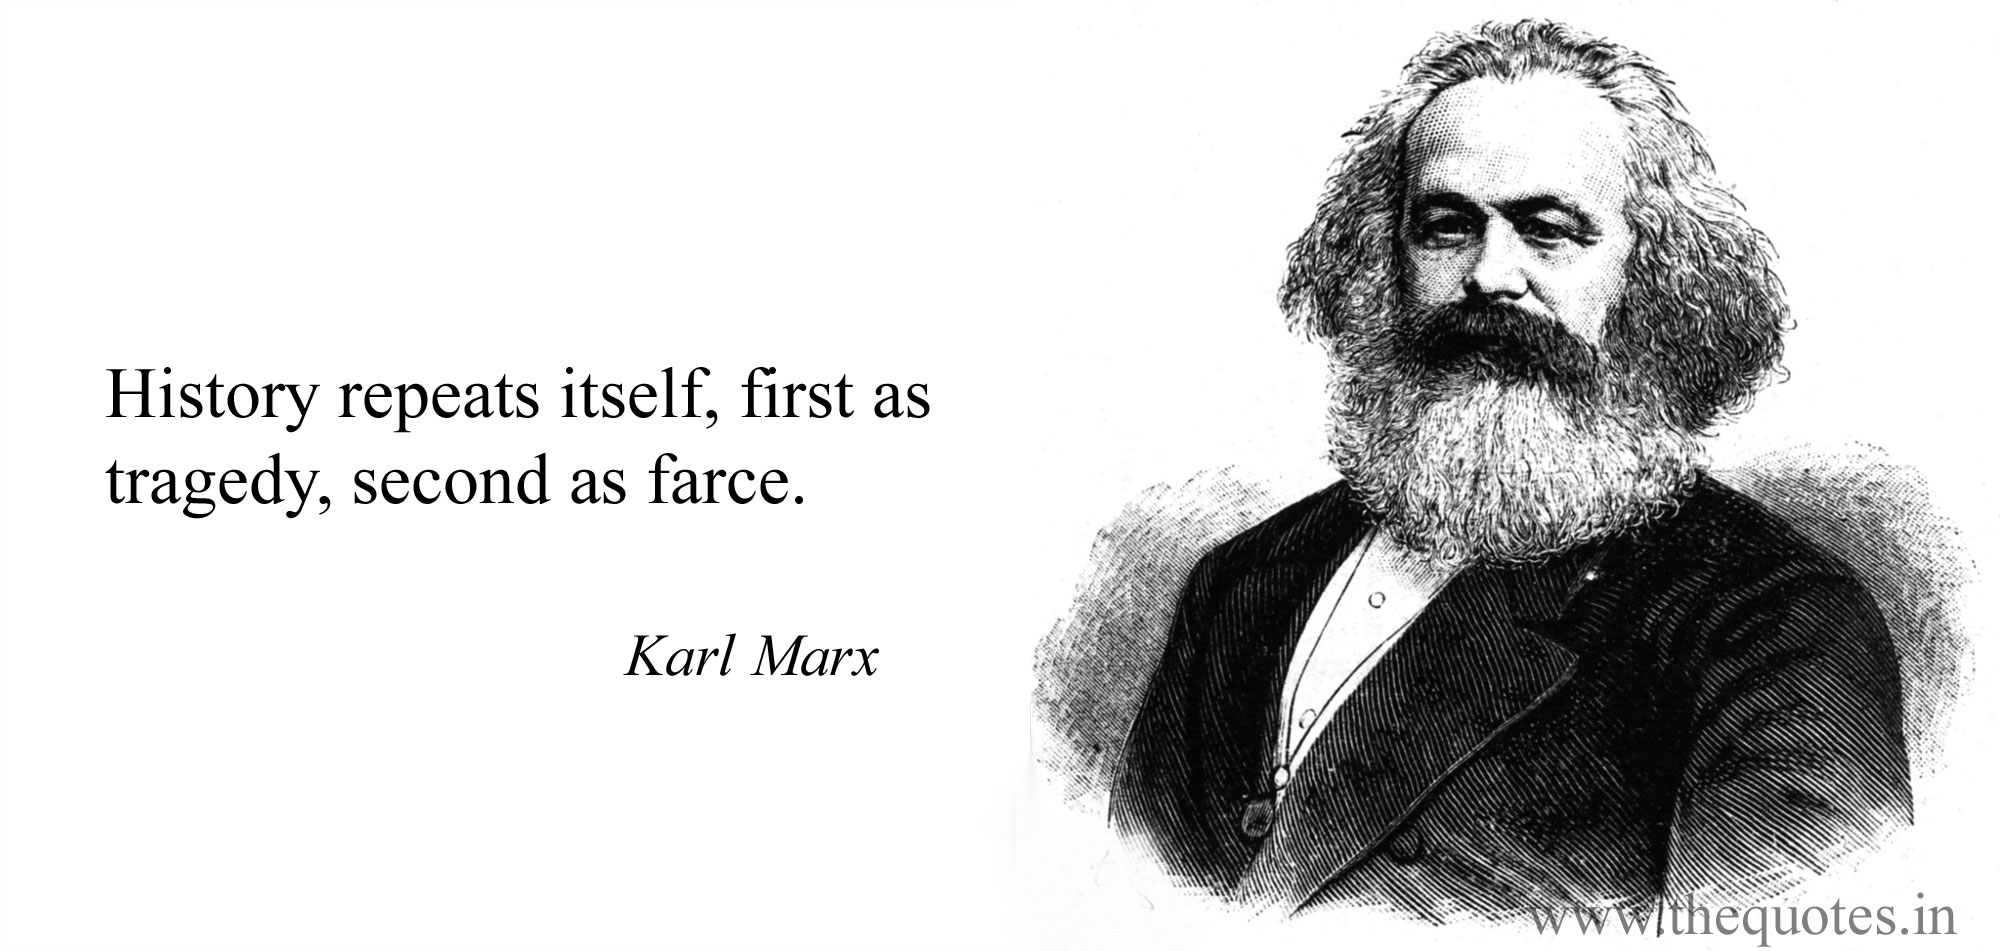 karl-marx-quotes-4